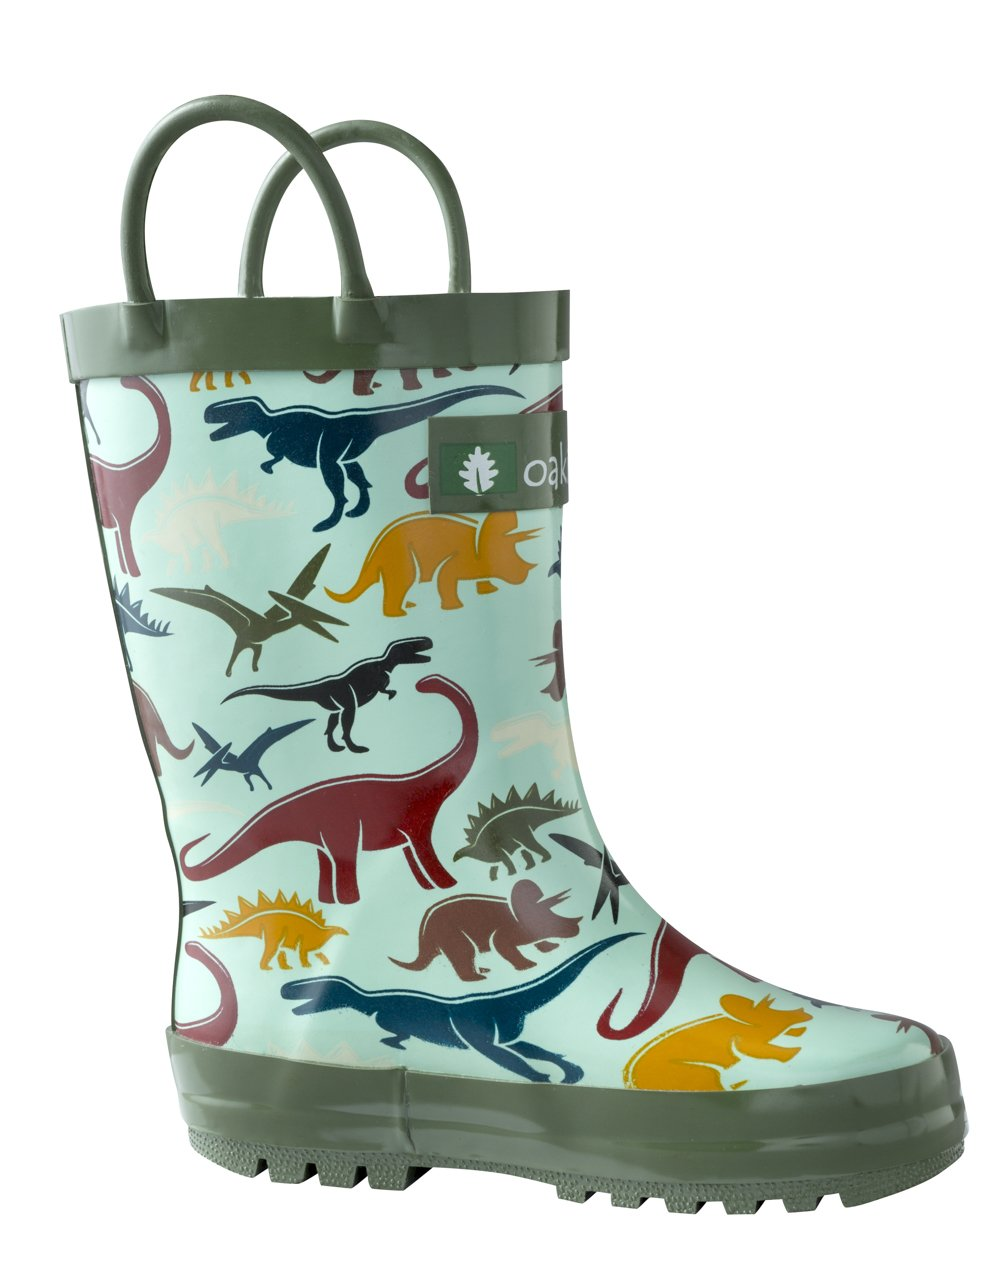 OAKI Kids Rubber Rain Boots with Easy-On Handles, Earthy Dino, 6T US Toddler